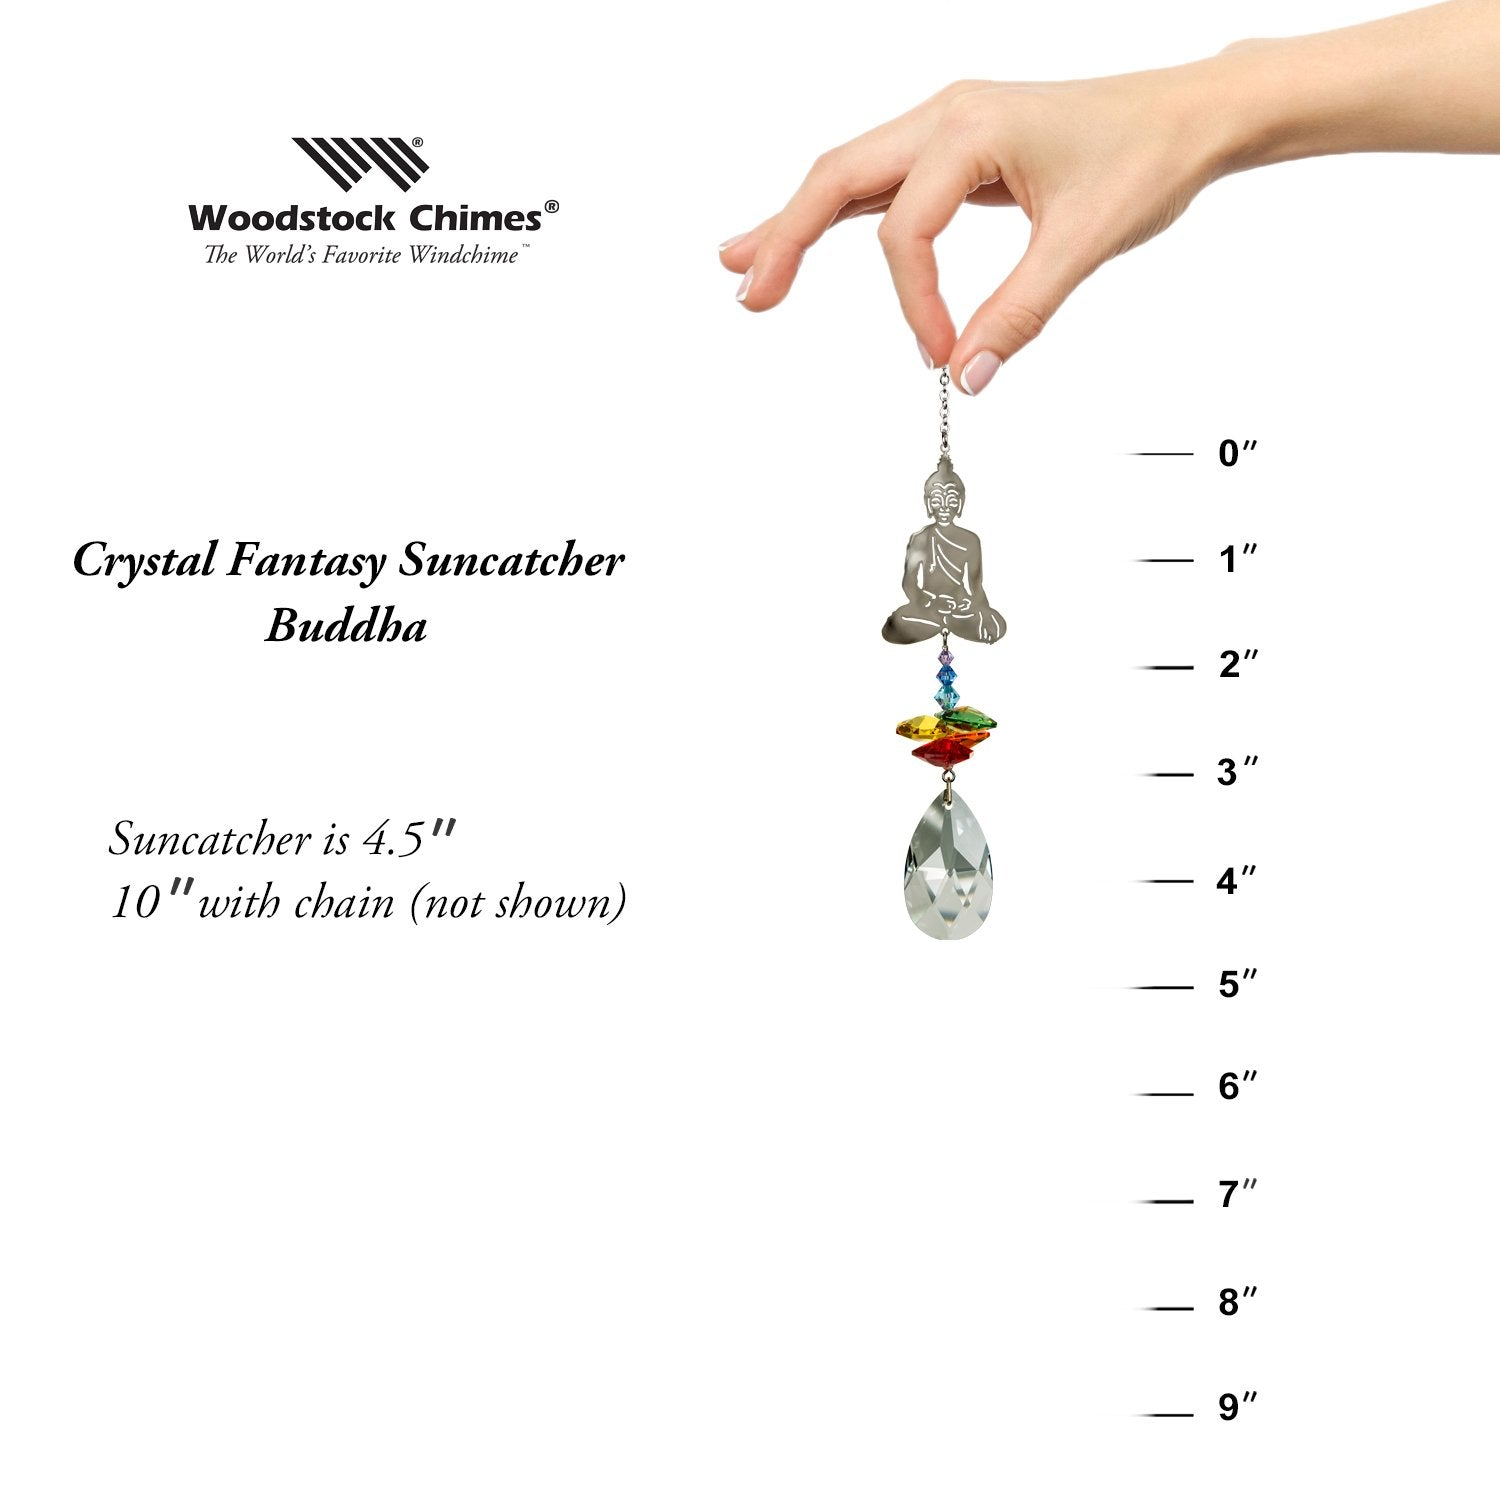 Crystal Fantasy Suncatcher - Buddha proportion image